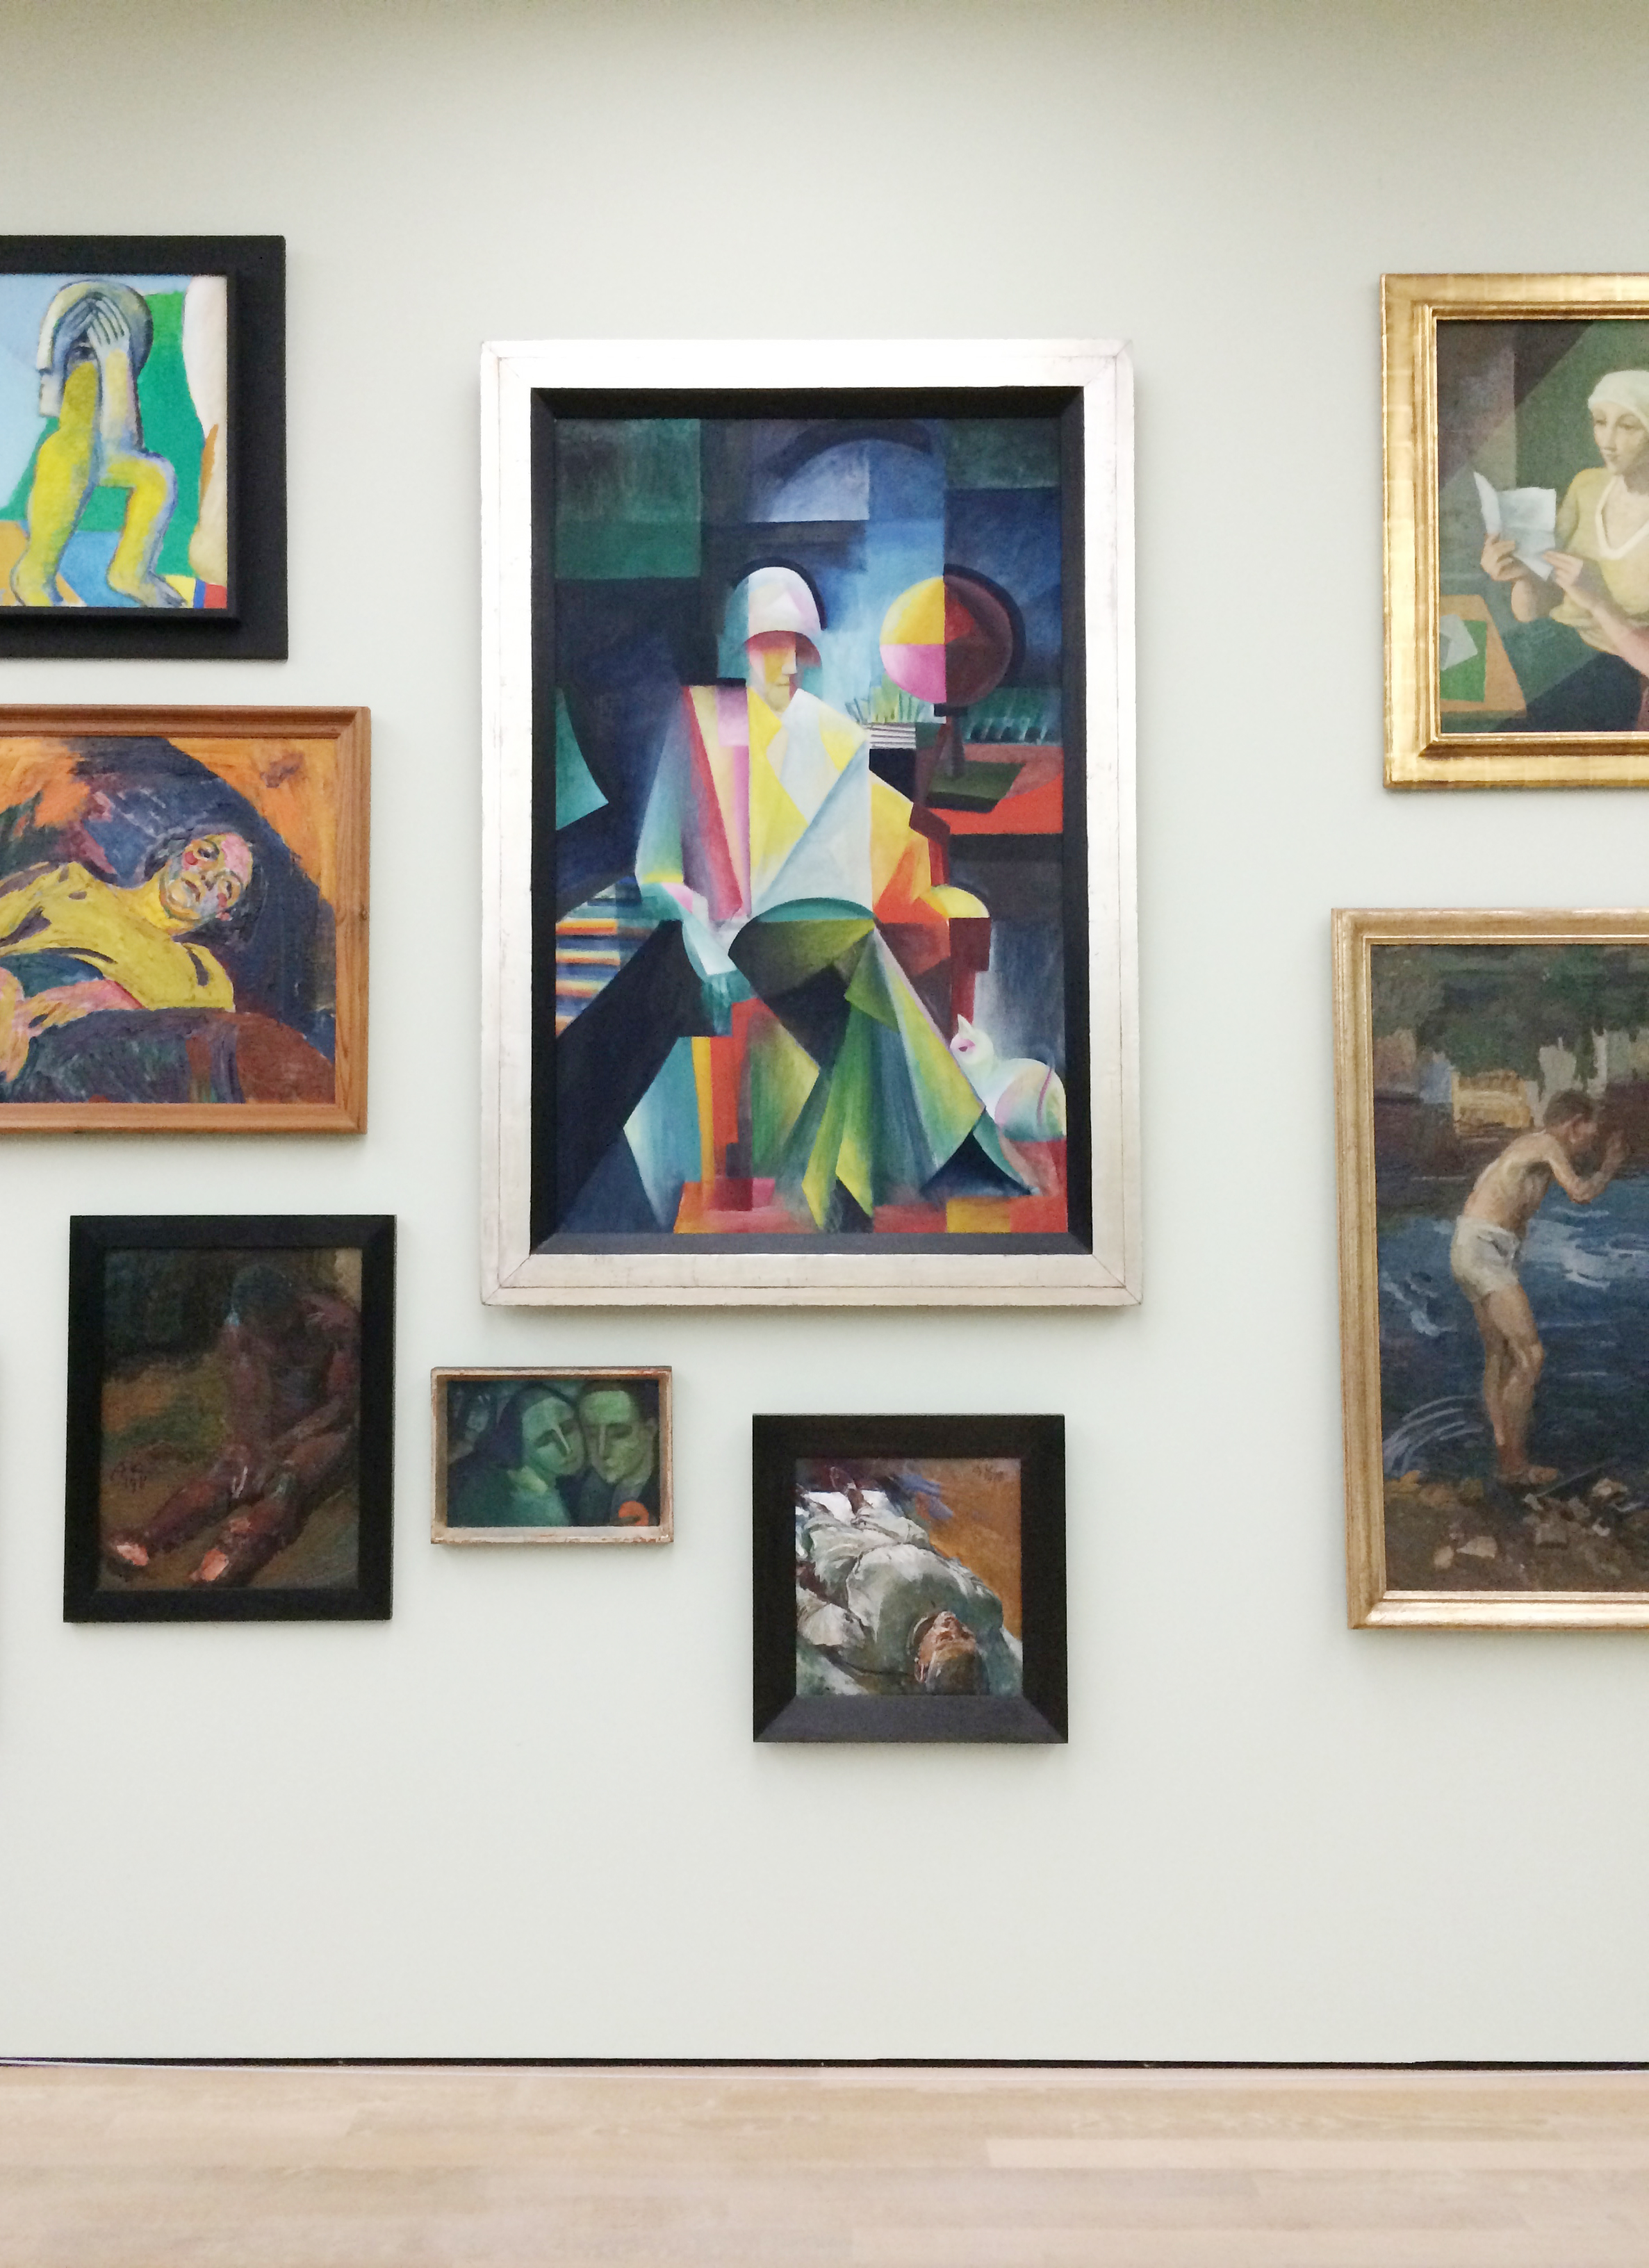 And the paintings.